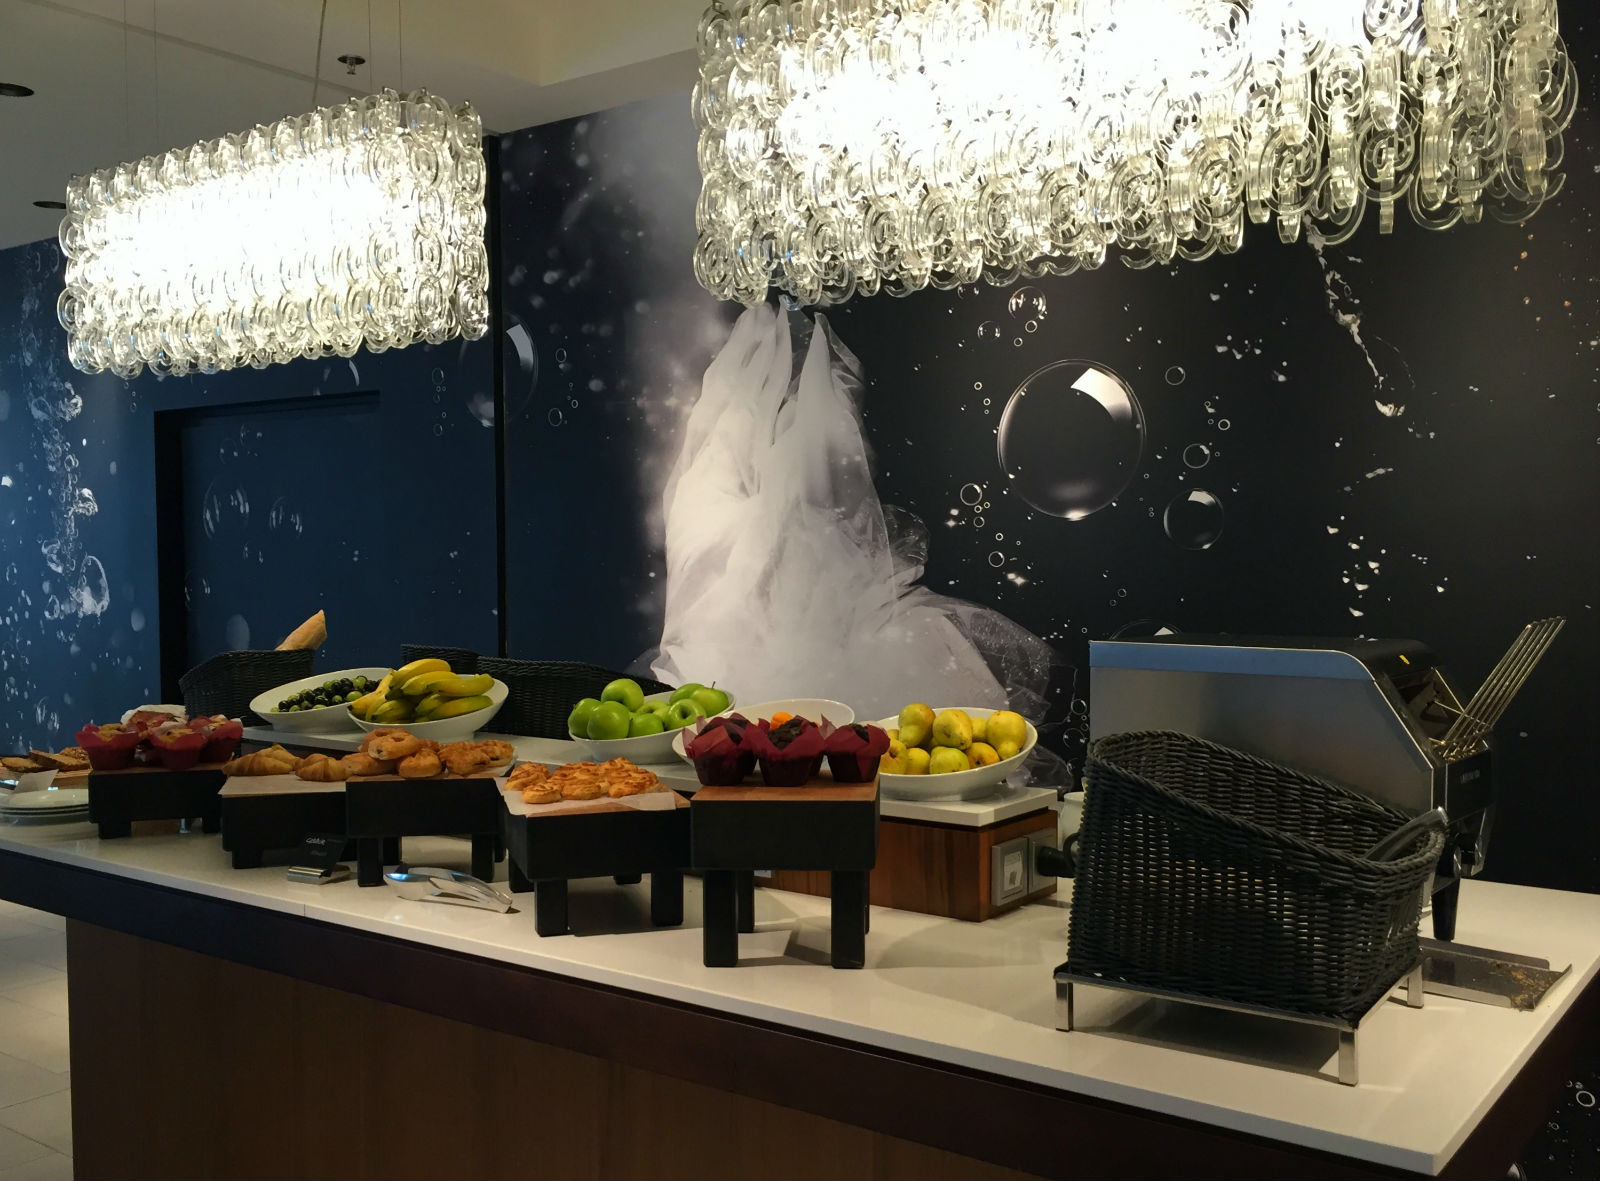 Breakfast at Courtyard by Marriott Cologne